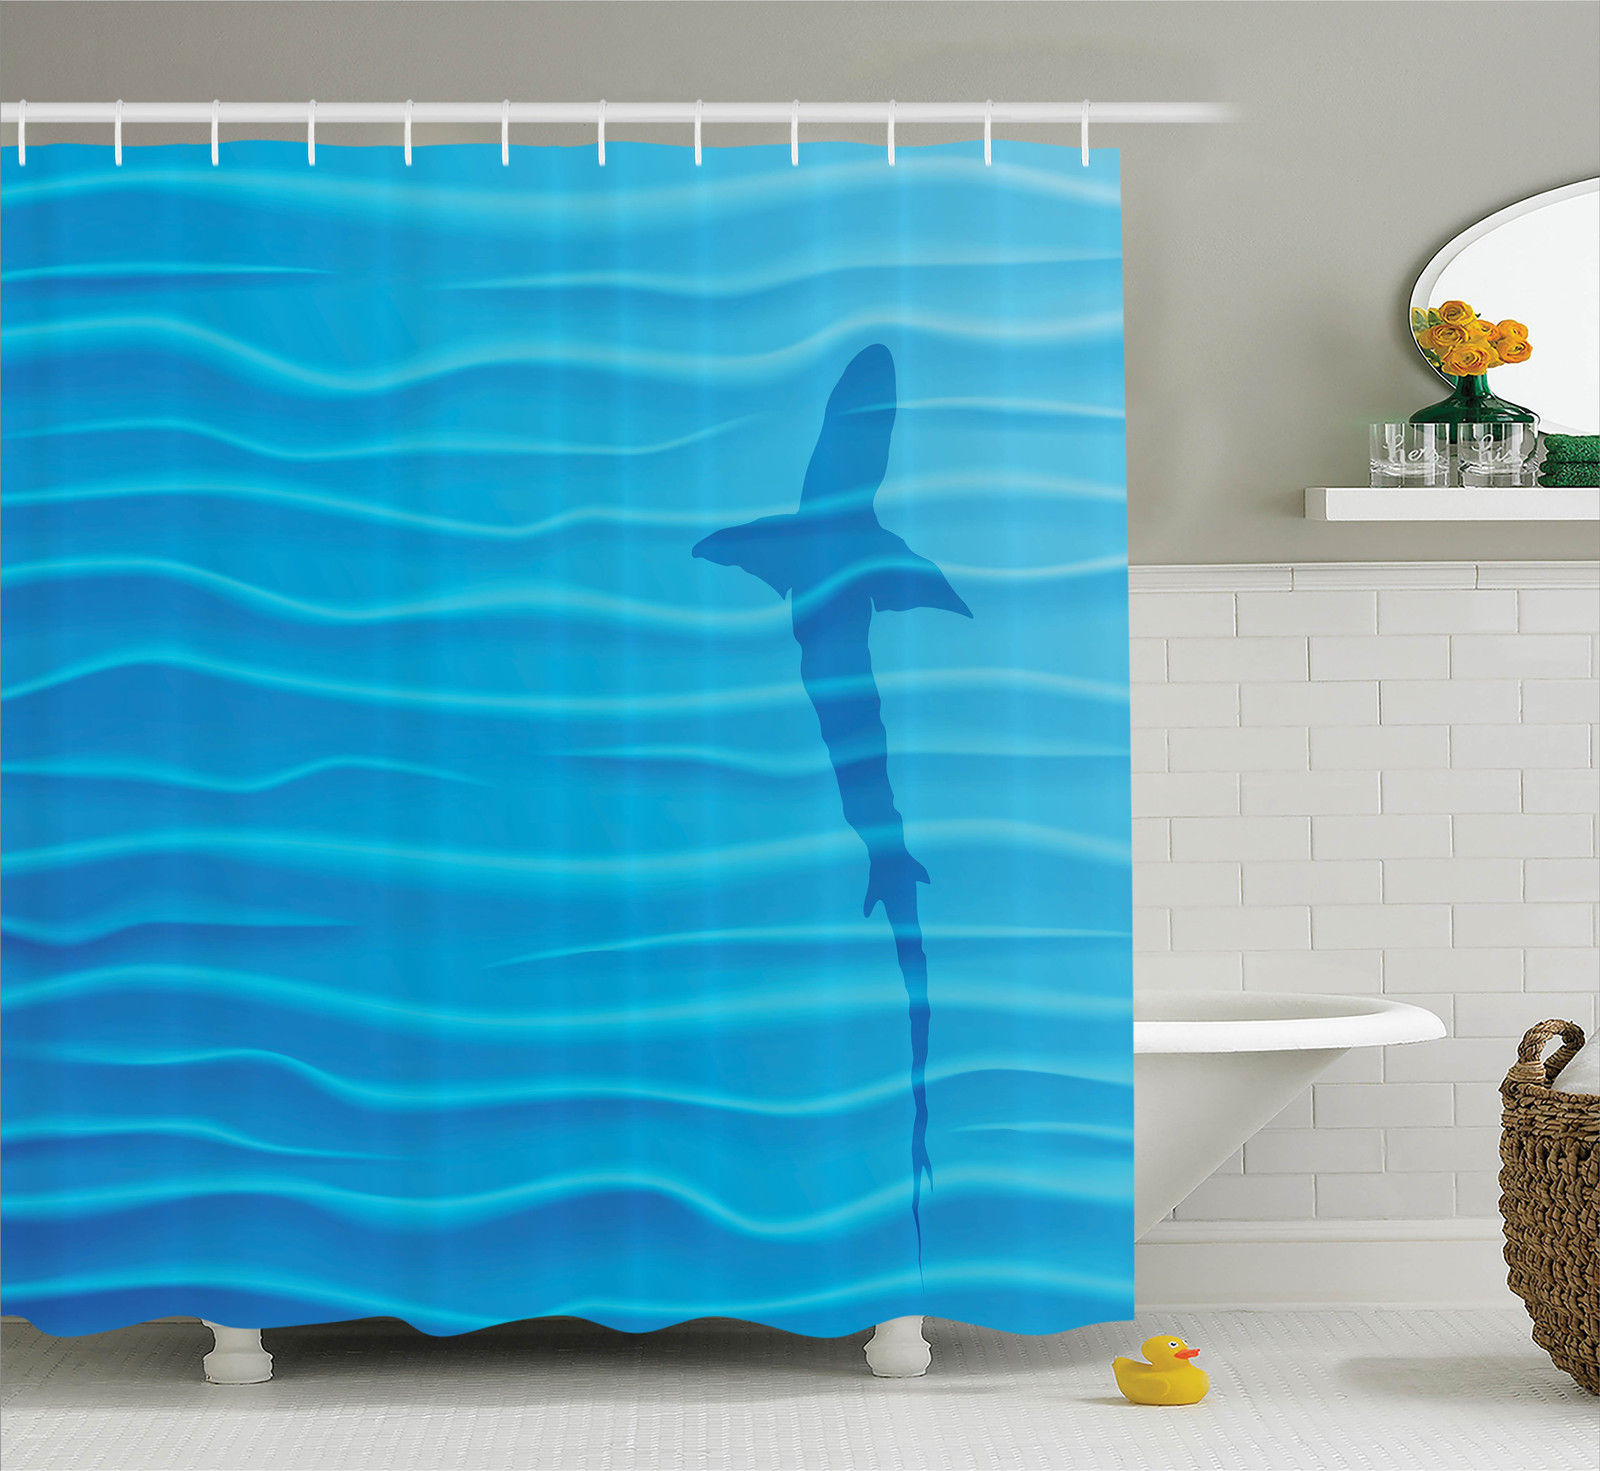 Sea Animals Decor Shower Curtain Set, Shark Silhouette In Water Waves Shadow Danger Summertime Marine, Bathroom Accessories, 69W X 70L Inches, By Ambesonne